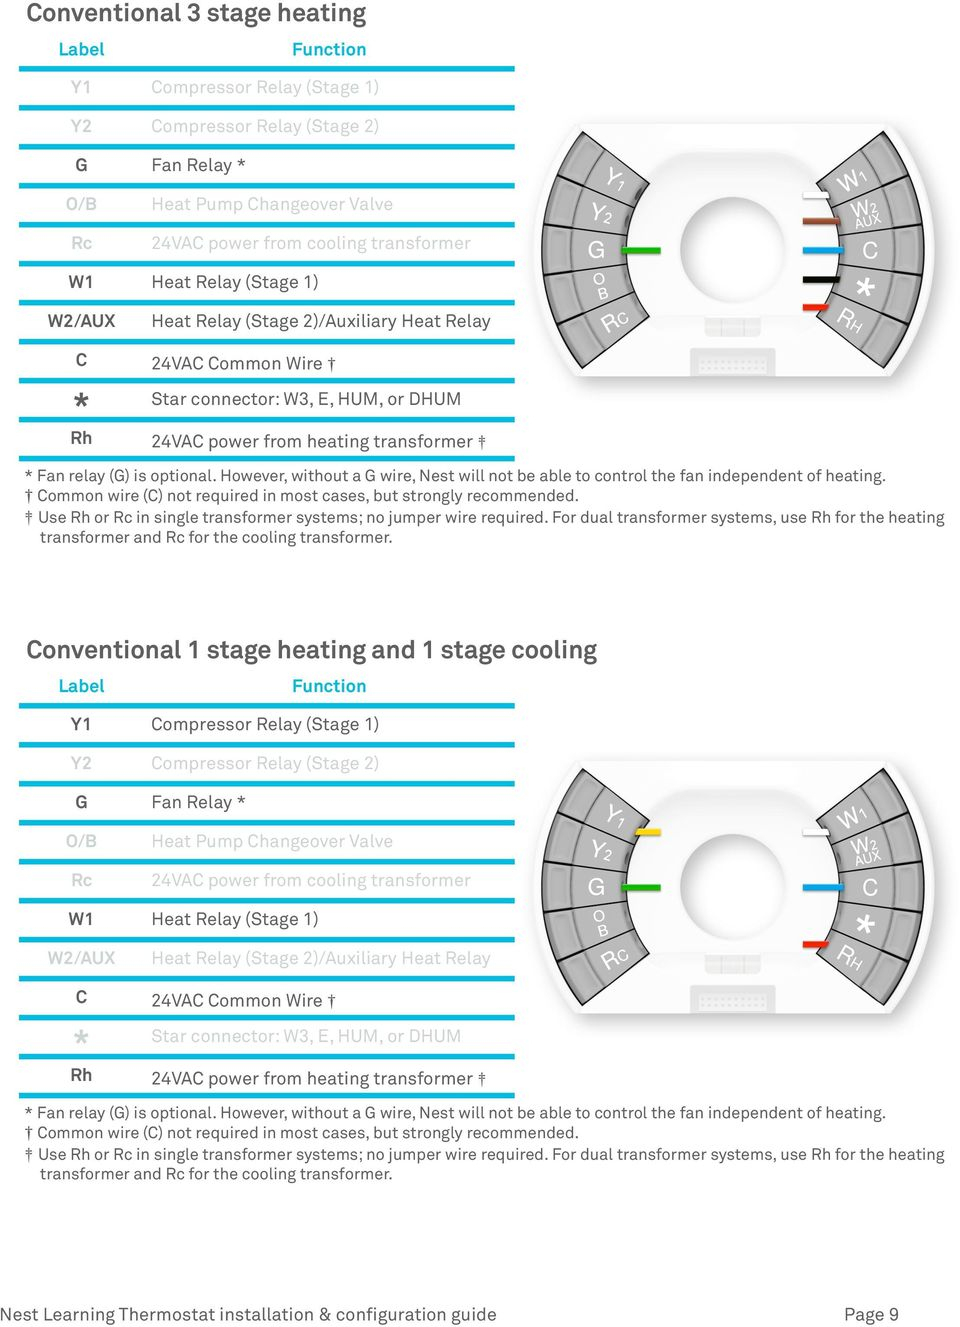 Nest Learning Thermostat Pro Installation & Configuration Guide - Pdf - Wiring Diagram Nest Thermostat E With W2 Wire